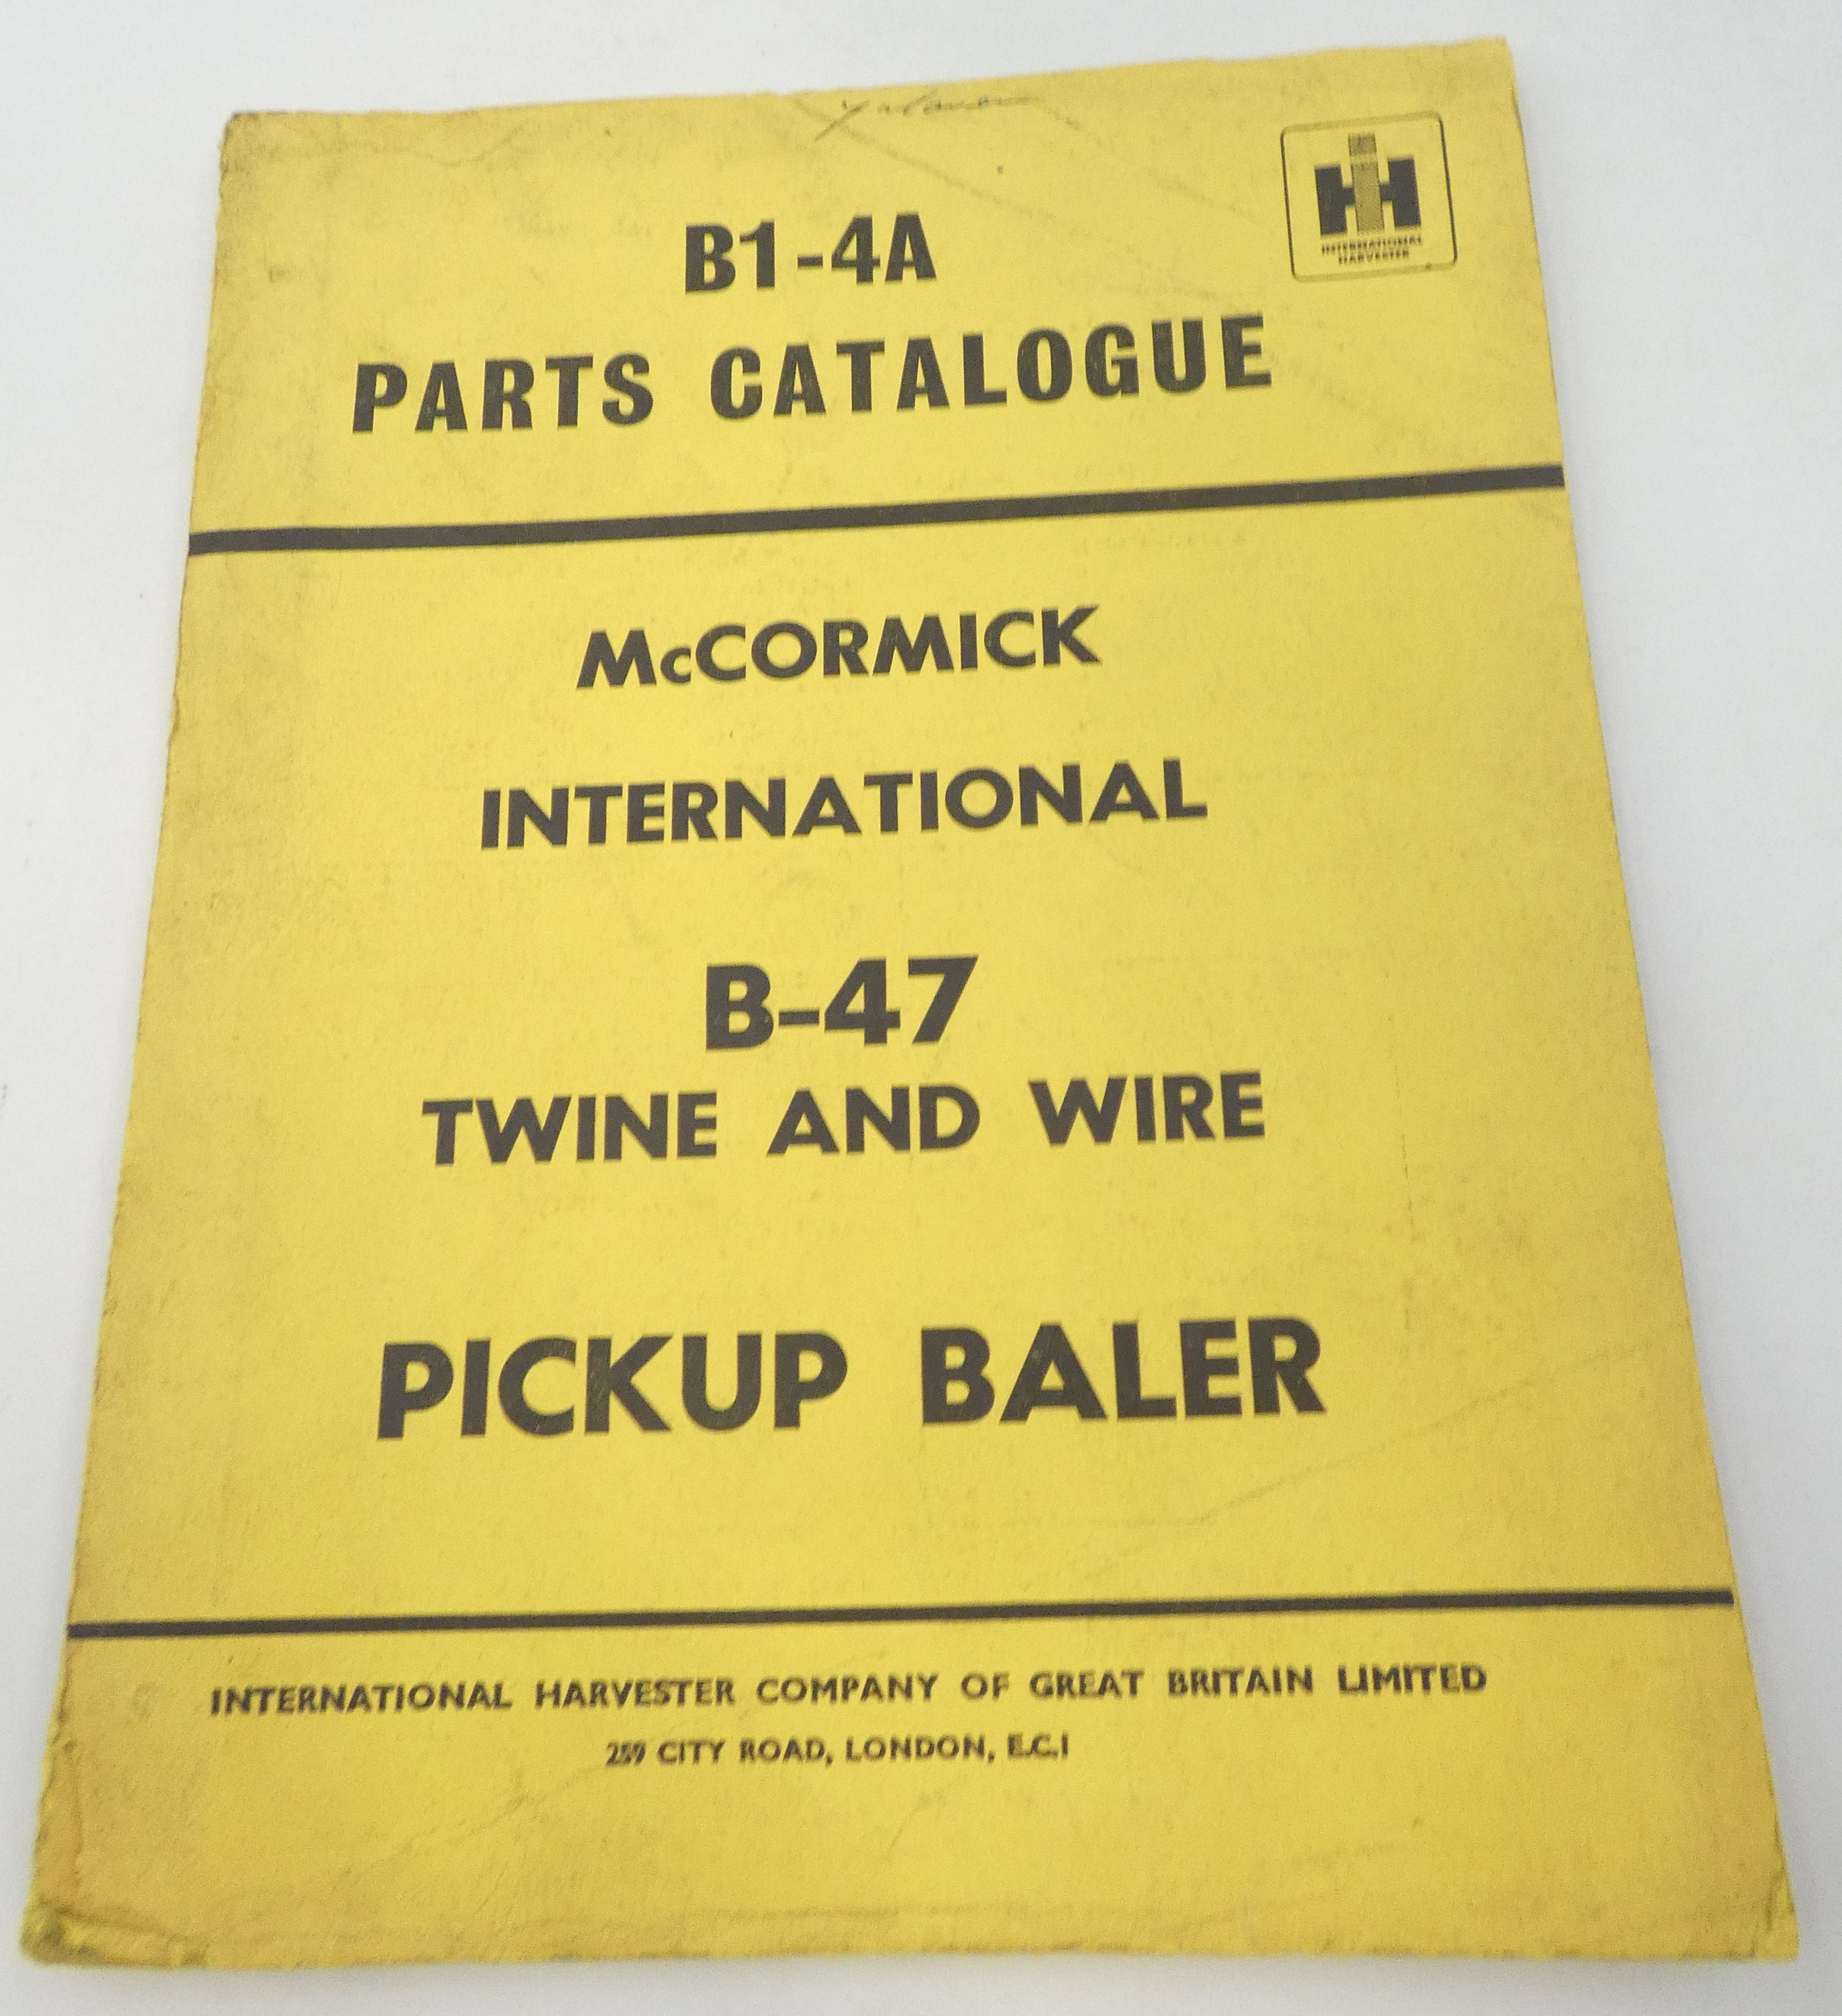 McCormick International B-47 twine and wire pickup baler parts catalogue